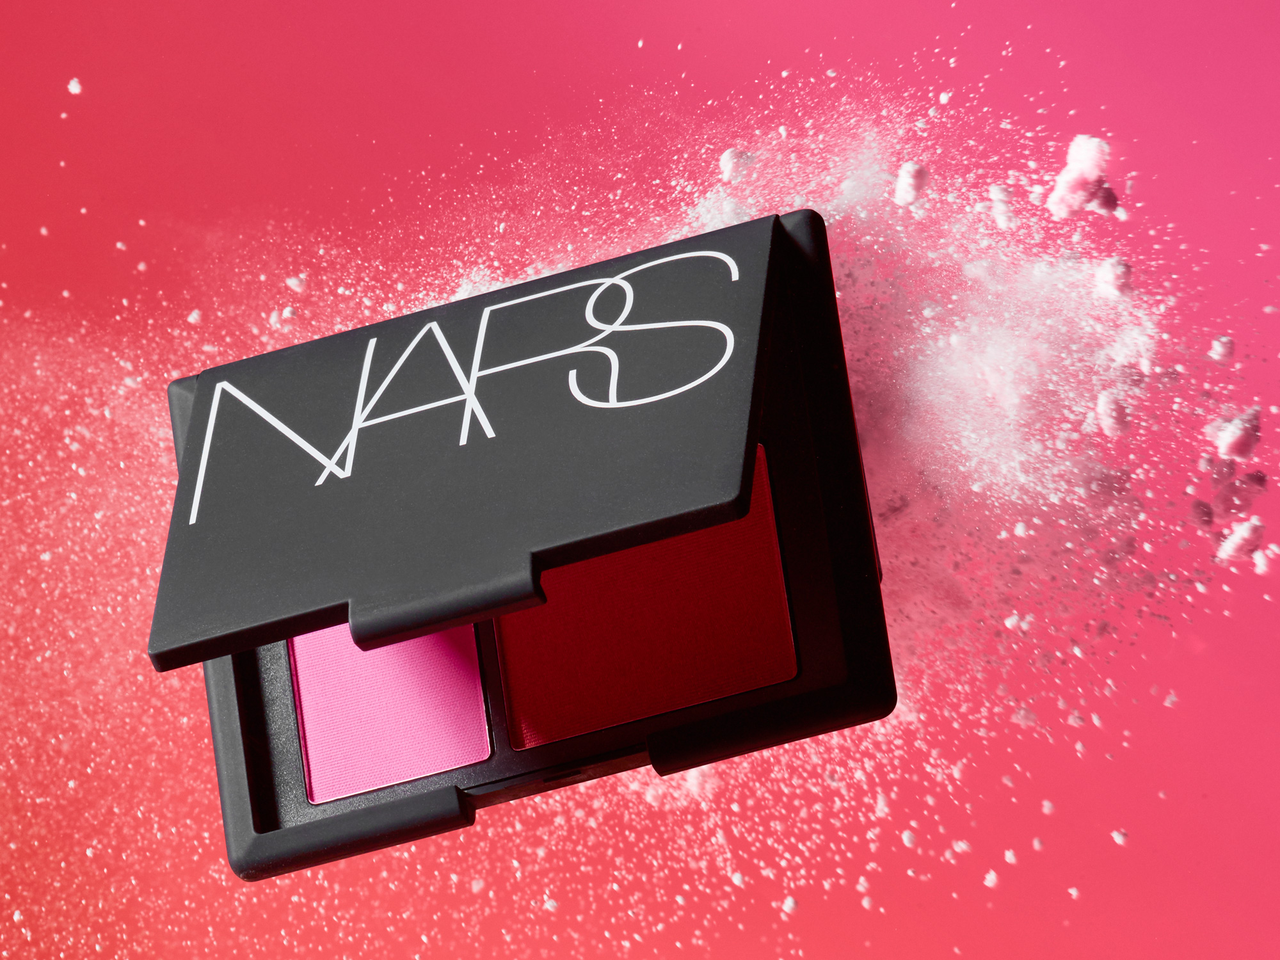 NARS_preview.png